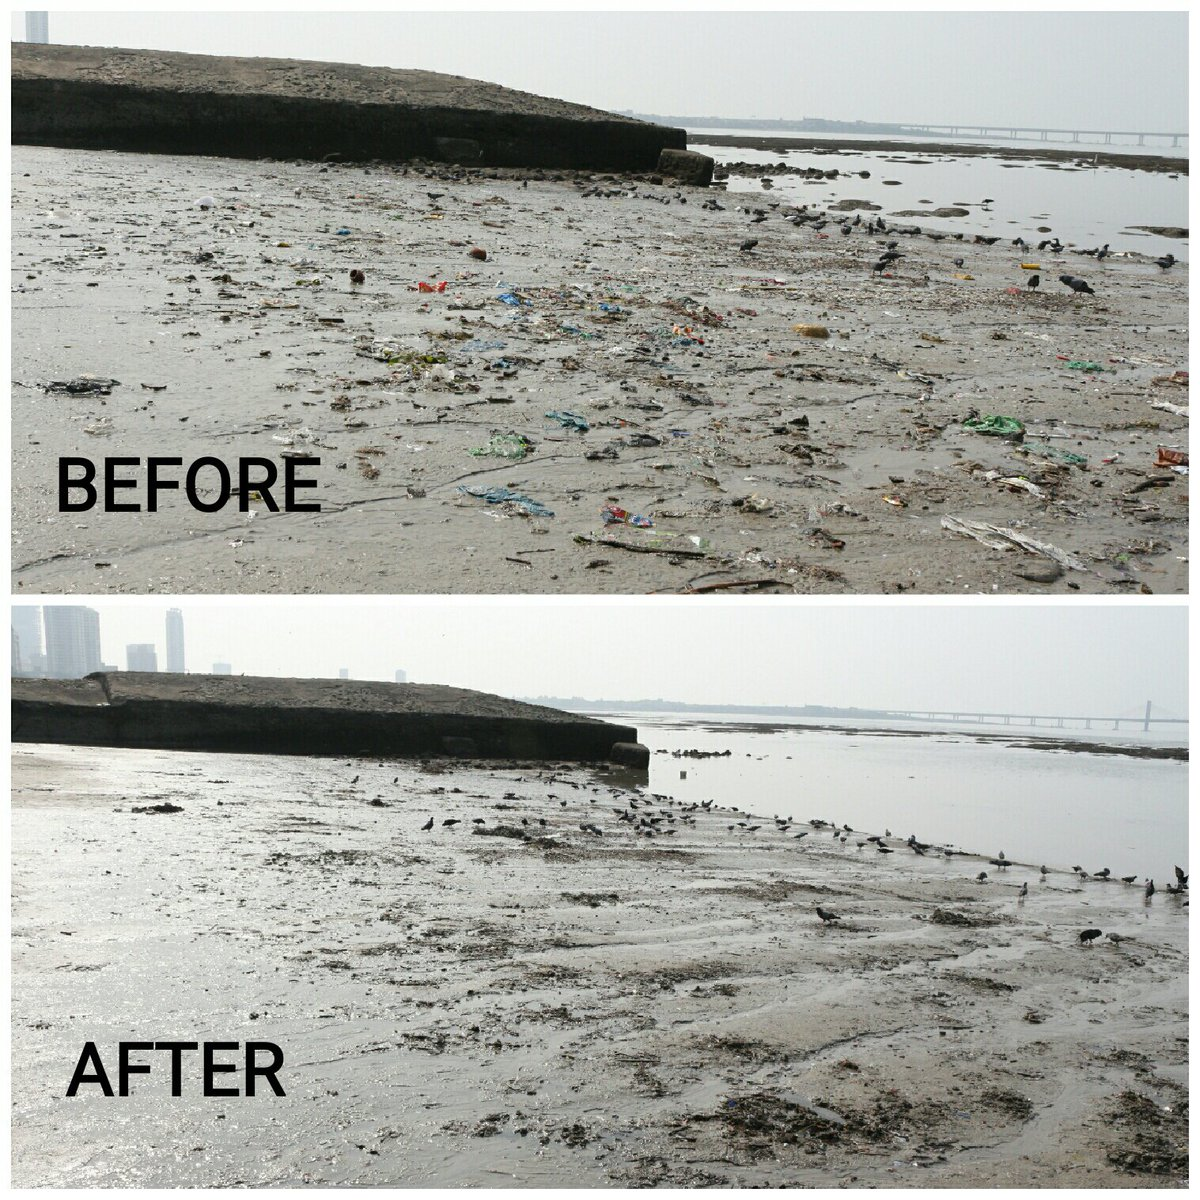 Week 10: It sure was special. The sense of accomplishment after 10 whole weeks is amazing! With @VSITCollege  and NSS unit of Ruia college @TheRuiaite #Thanks a ton! And, we shall not stop! #SwachhBharat #beachplease #latepost #PMModi<br>http://pic.twitter.com/WrzBCuOiMA